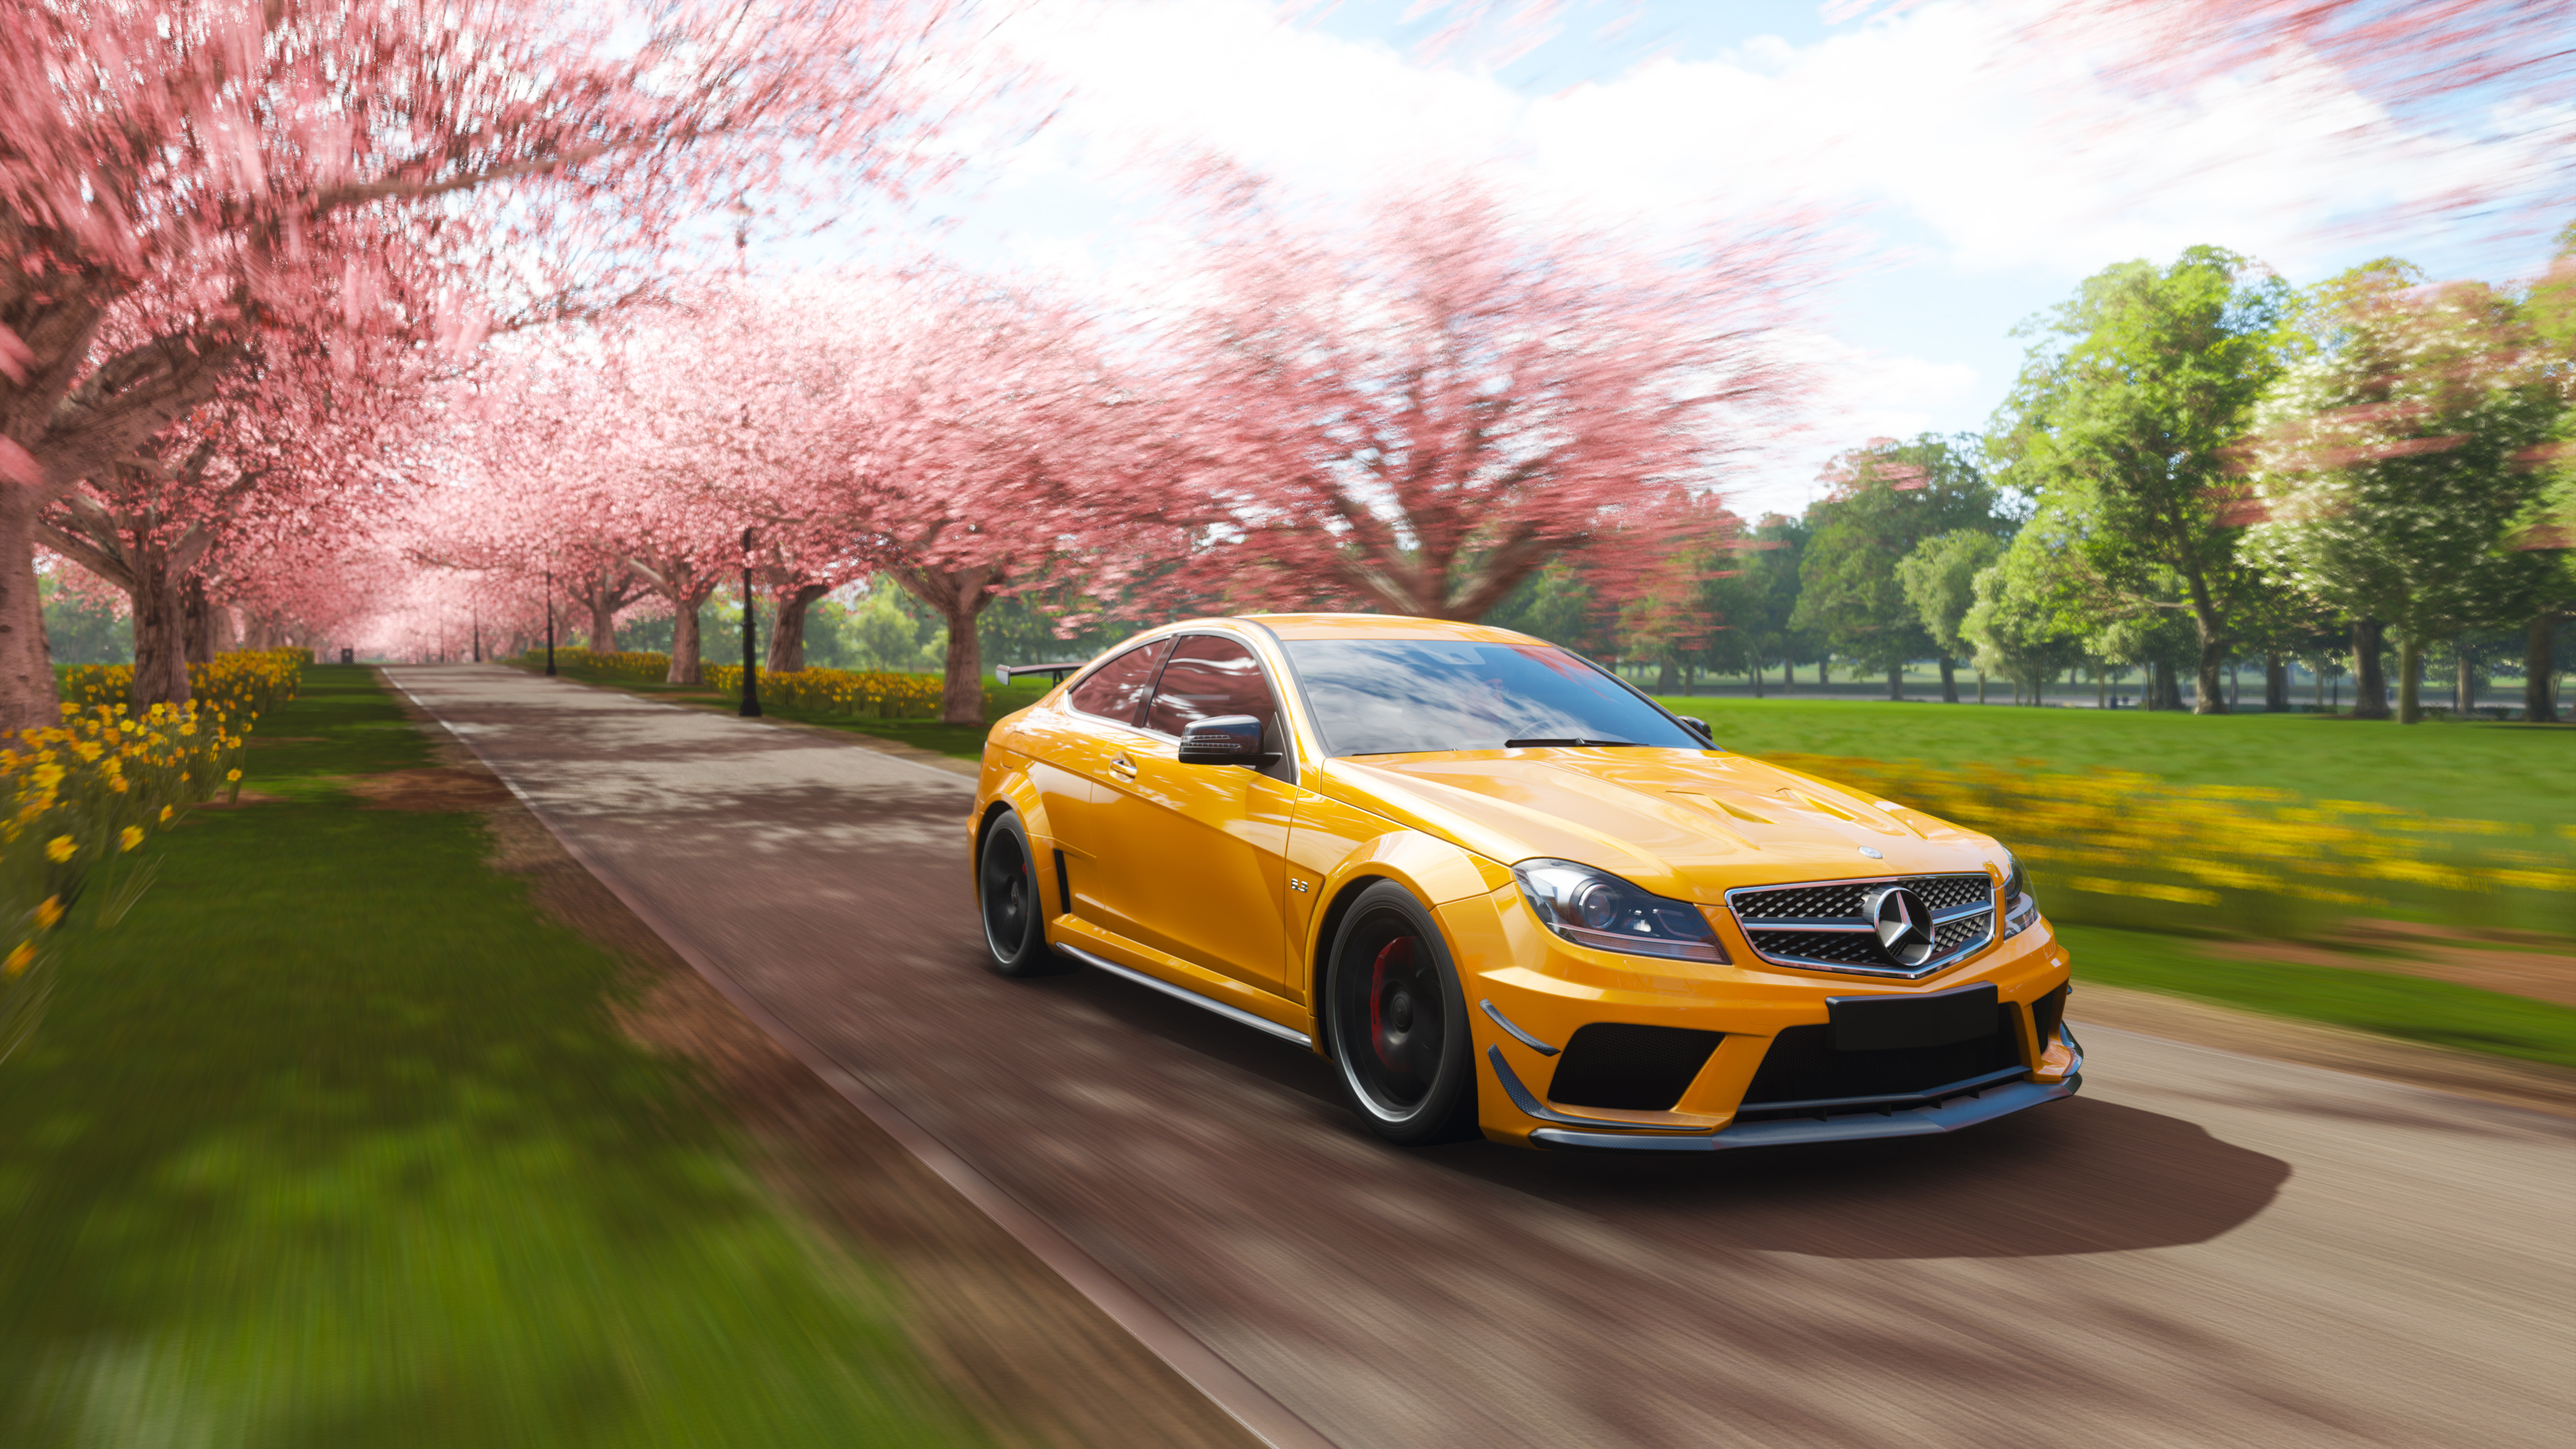 Mercedes Benz C63 Amg Coupe Forza Horizon 4 4k Hd Games 4k